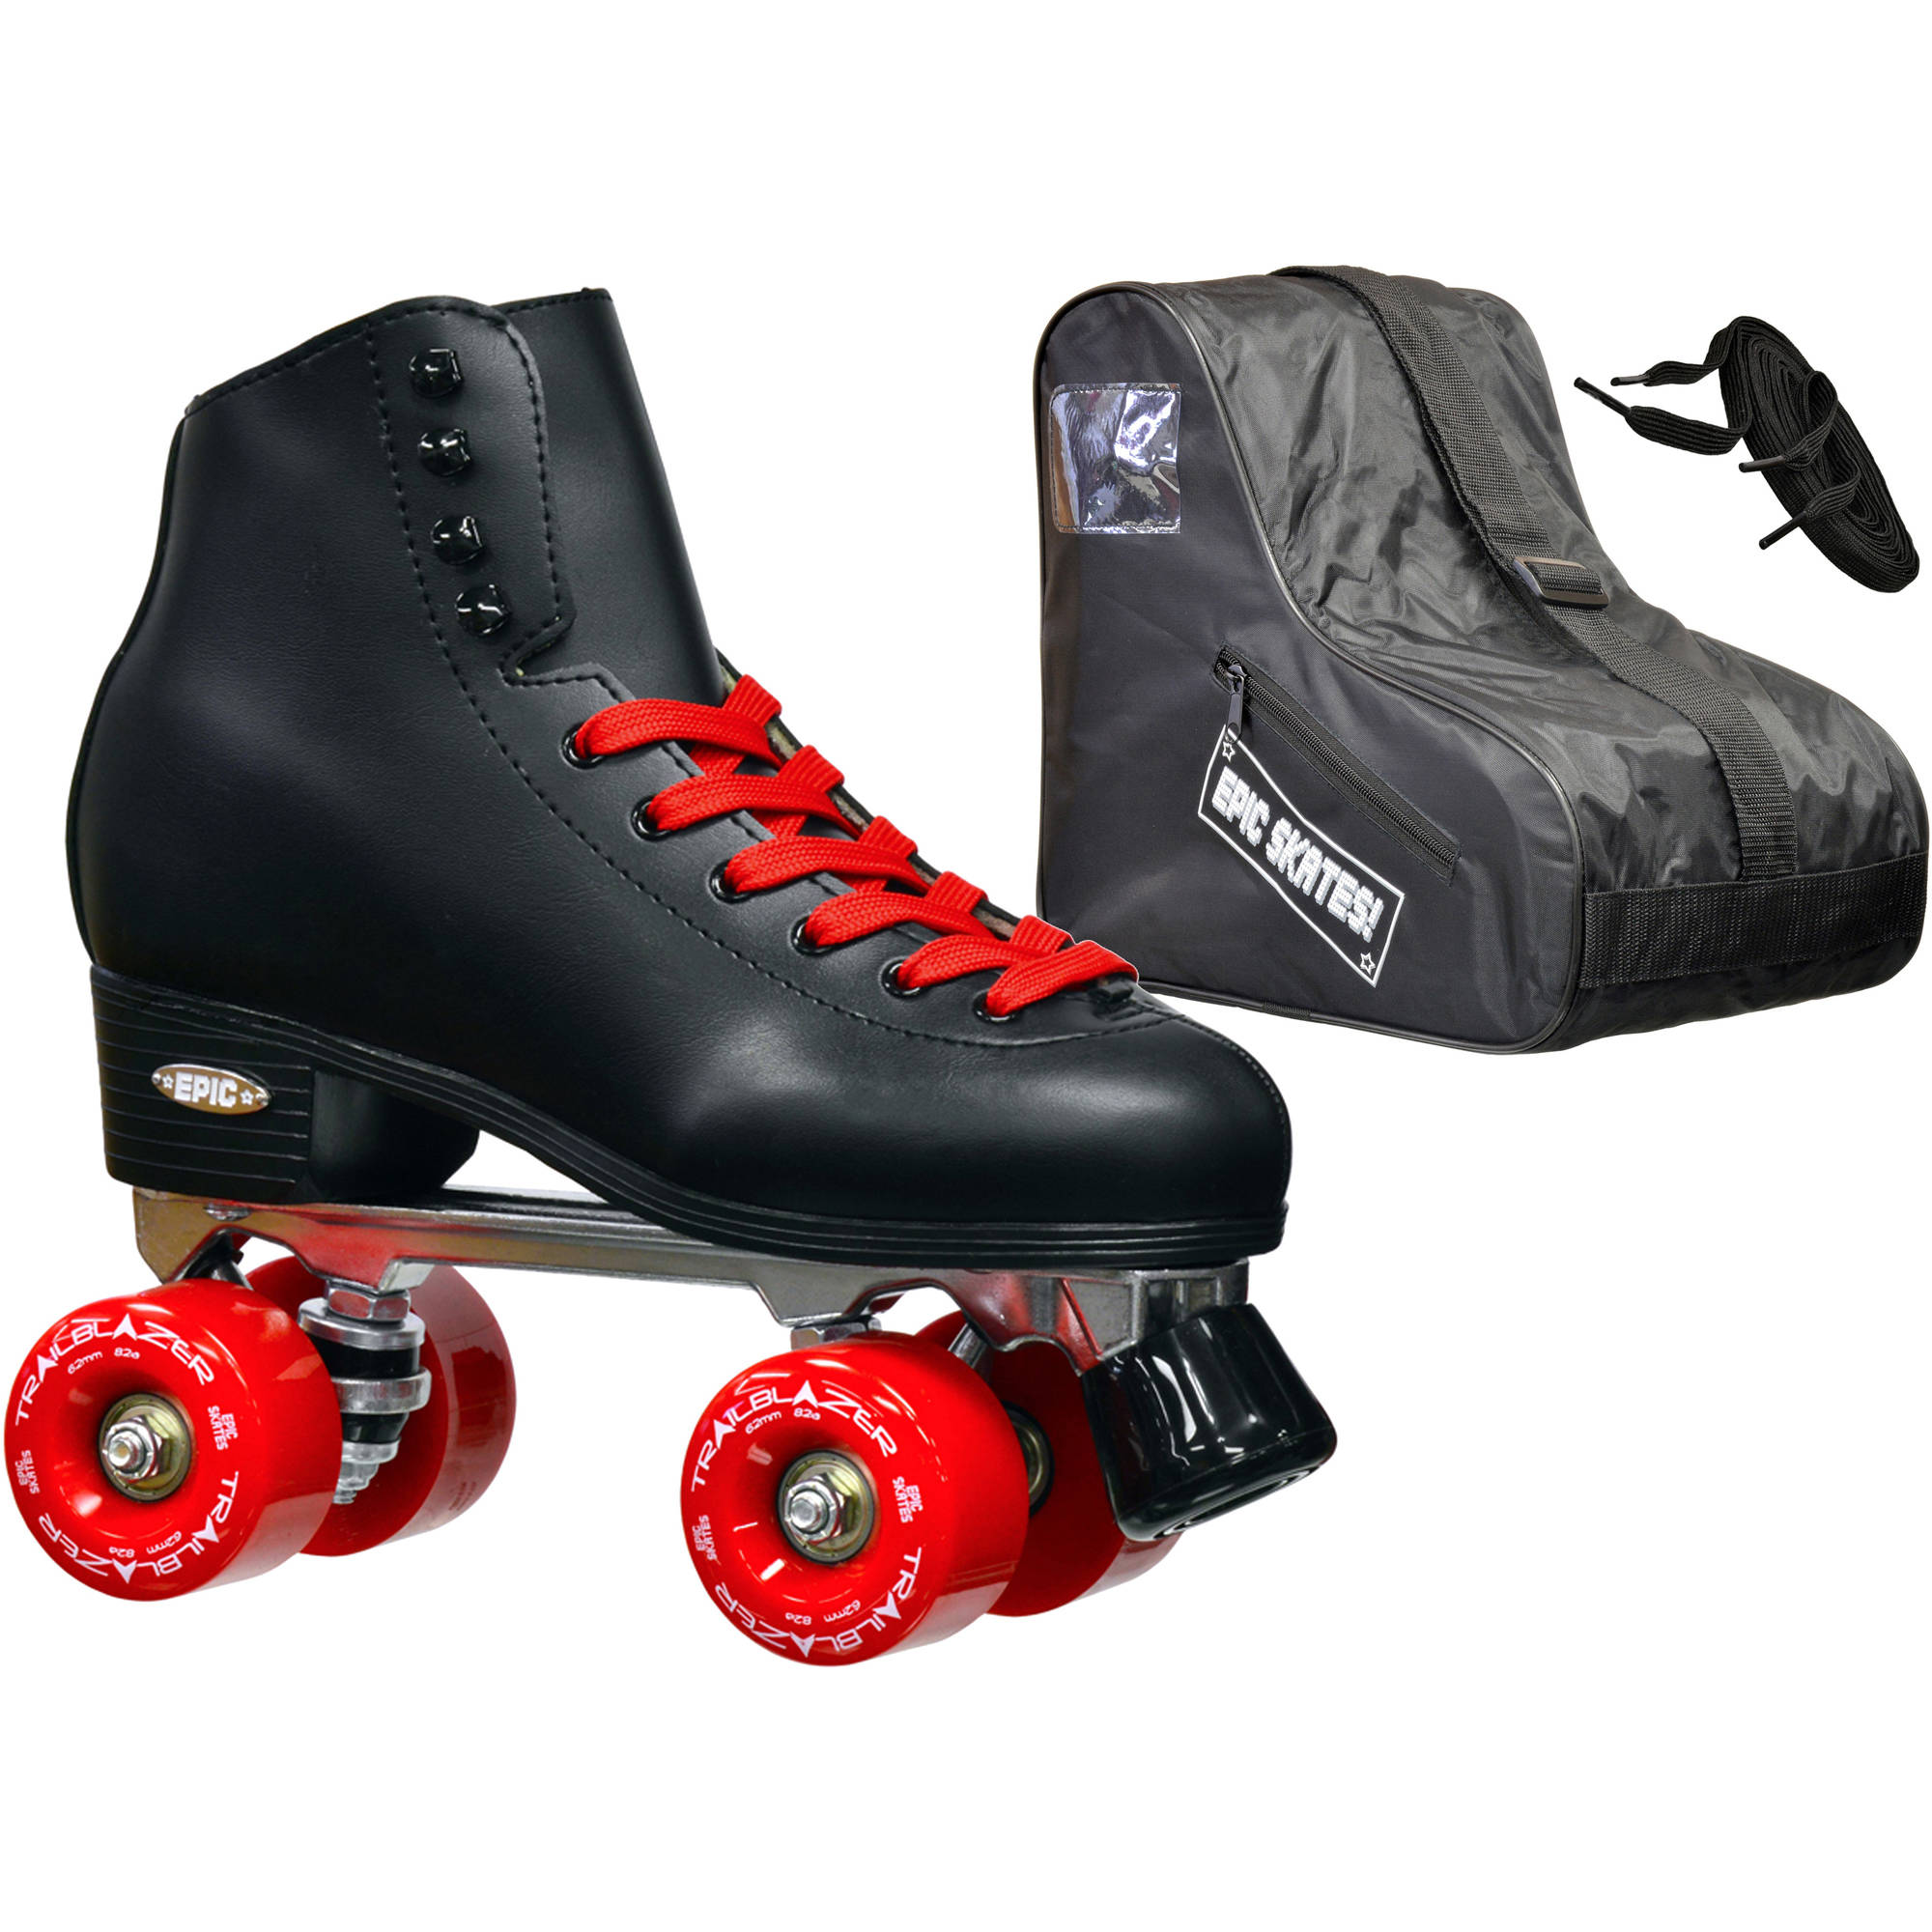 Epic Classic Black and Red Quad Roller Skates Package by Epic Skates